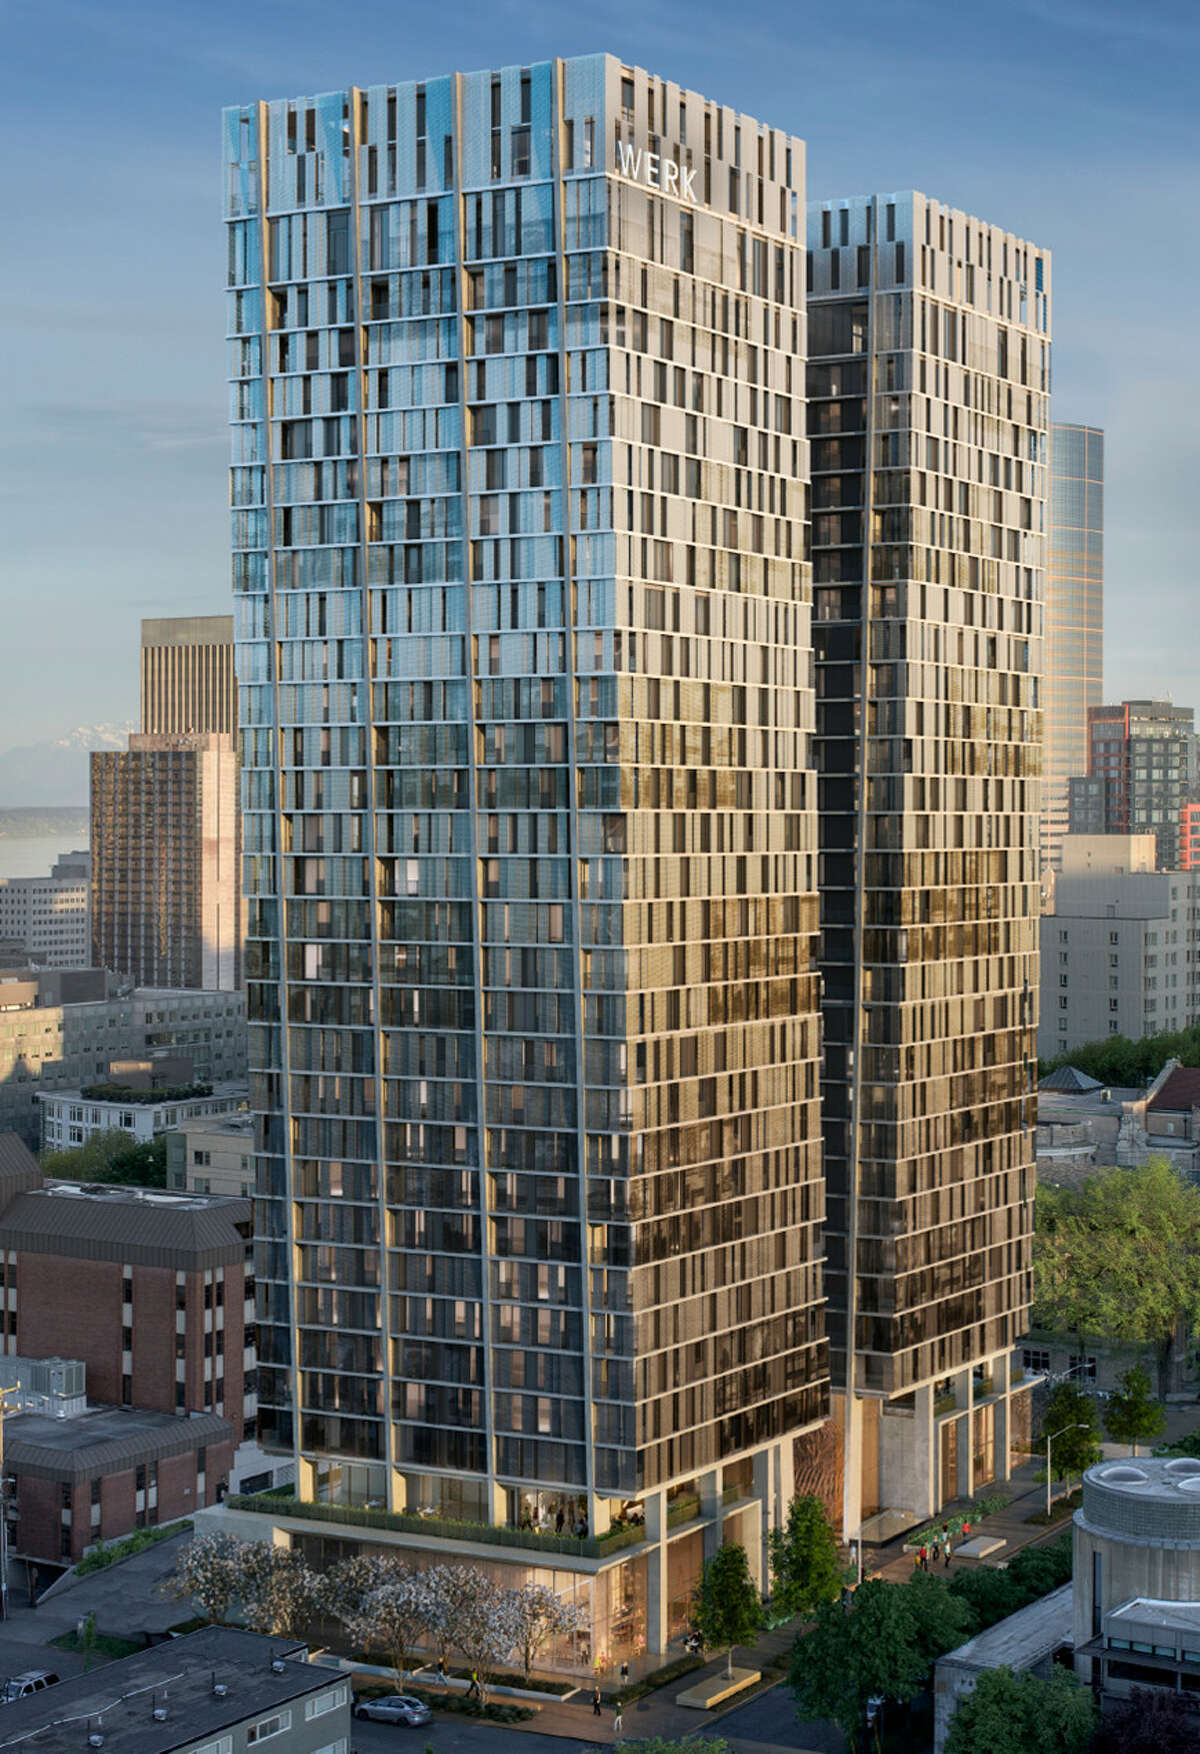 $105 million - 707 Terry Ave. - This project would include two, 33-story apartment towers with retail space at street level.